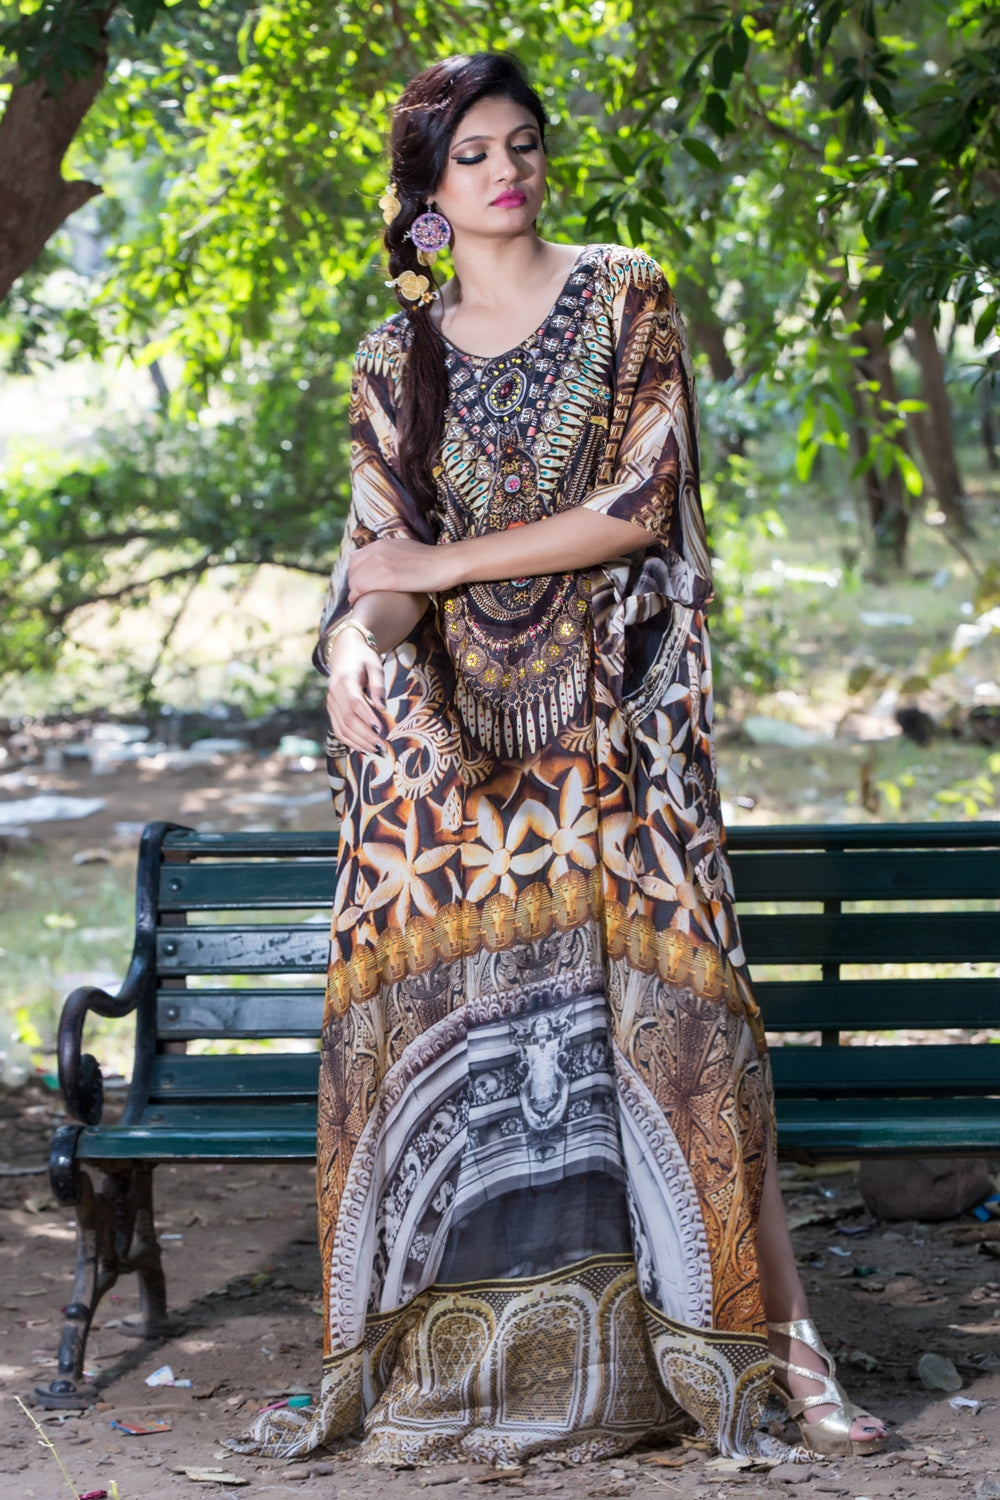 Embossed Artistic Tribal Geometric Printed Maxi Silk kaftans with embroidered beaded round neck - Silk kaftan